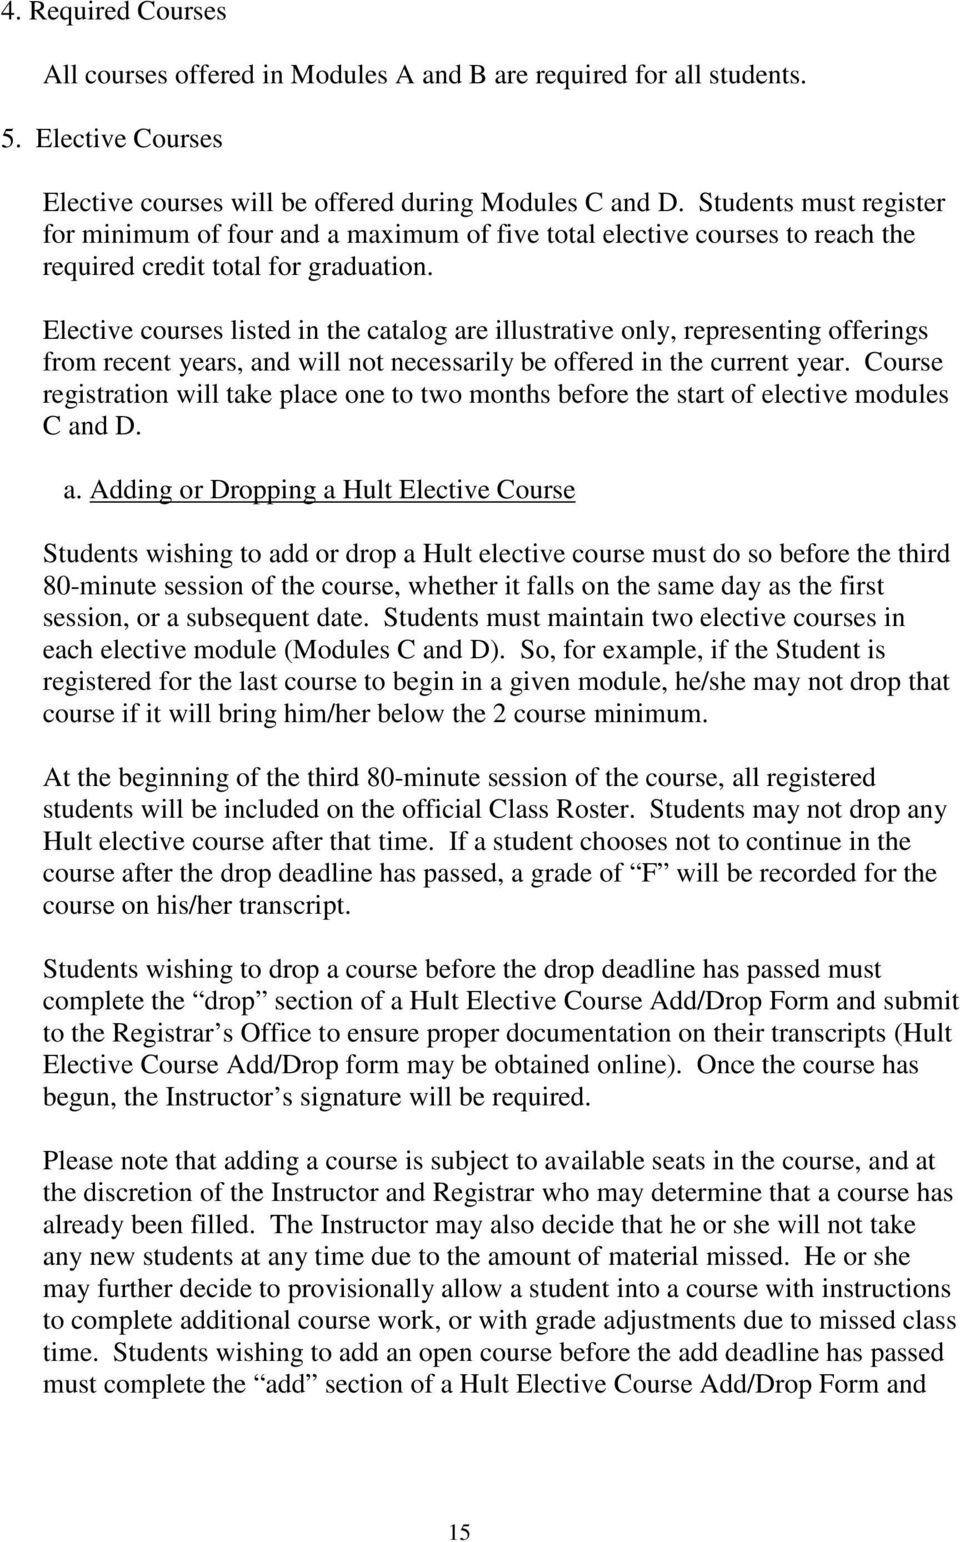 Elective courses listed in the catalog are illustrative only, representing offerings from recent years, and will not necessarily be offered in the current year.